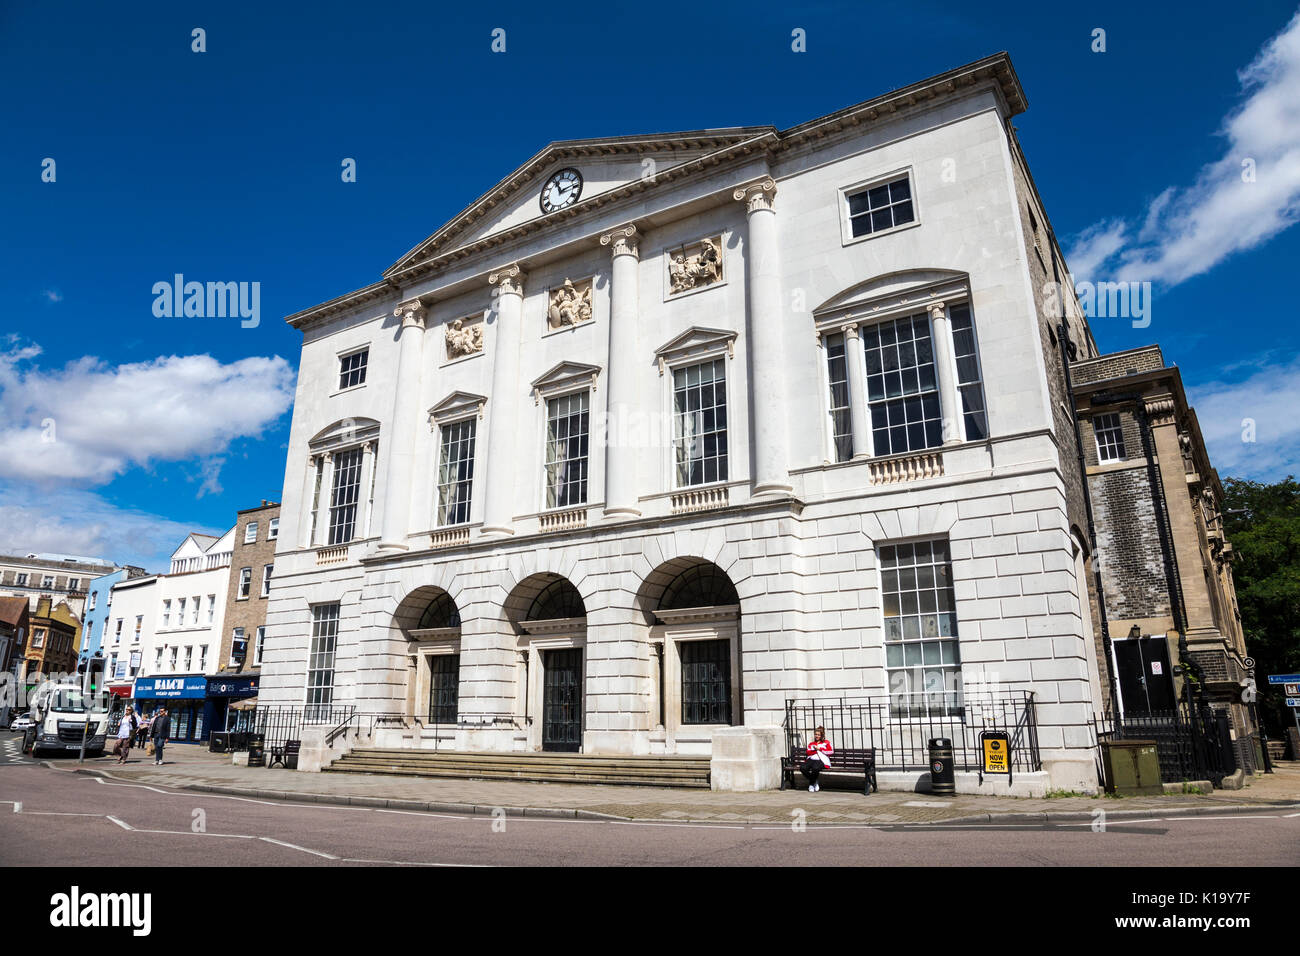 Shire Hall (old town hall) former Magistrates Court, Chelmsford, Essex, UK - Stock Image